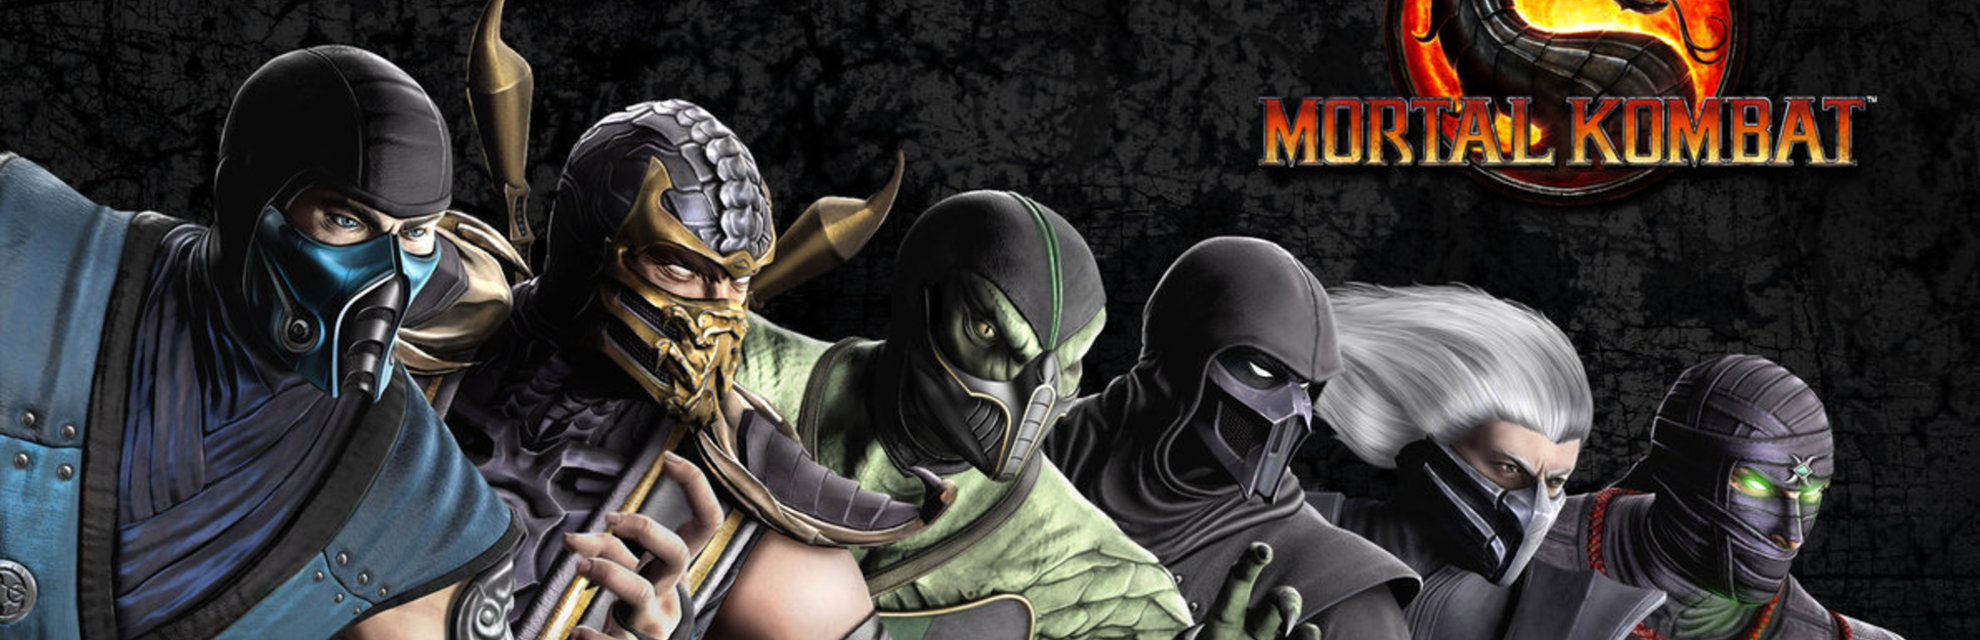 DIvisive Shinobi blog header photo